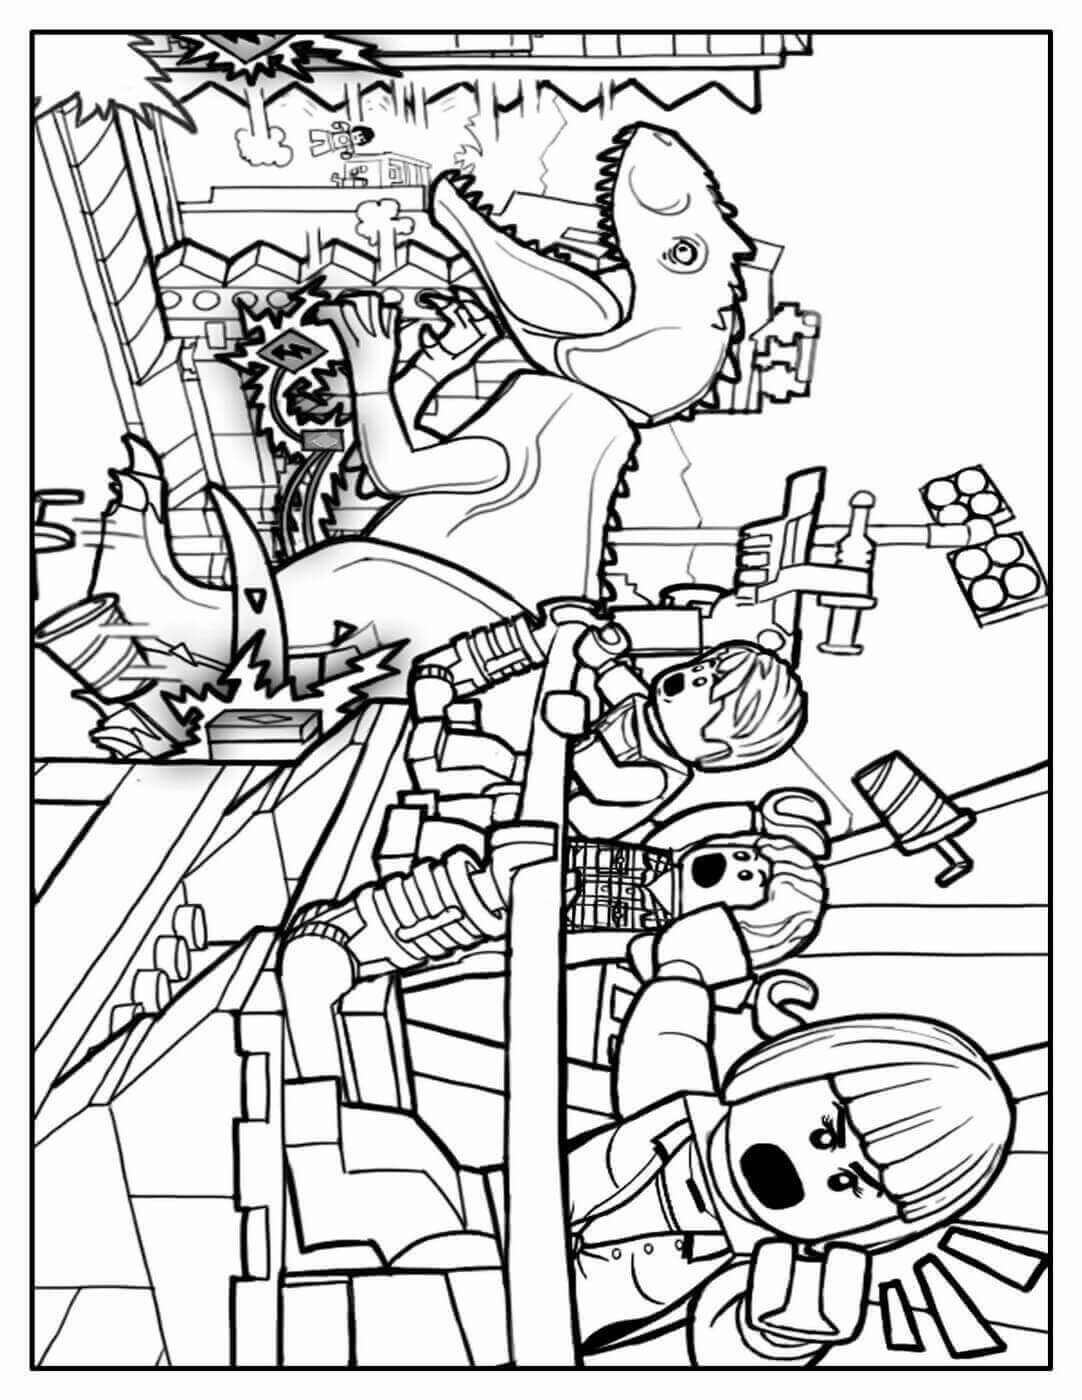 Lego Jurassic World Coloring Sheet